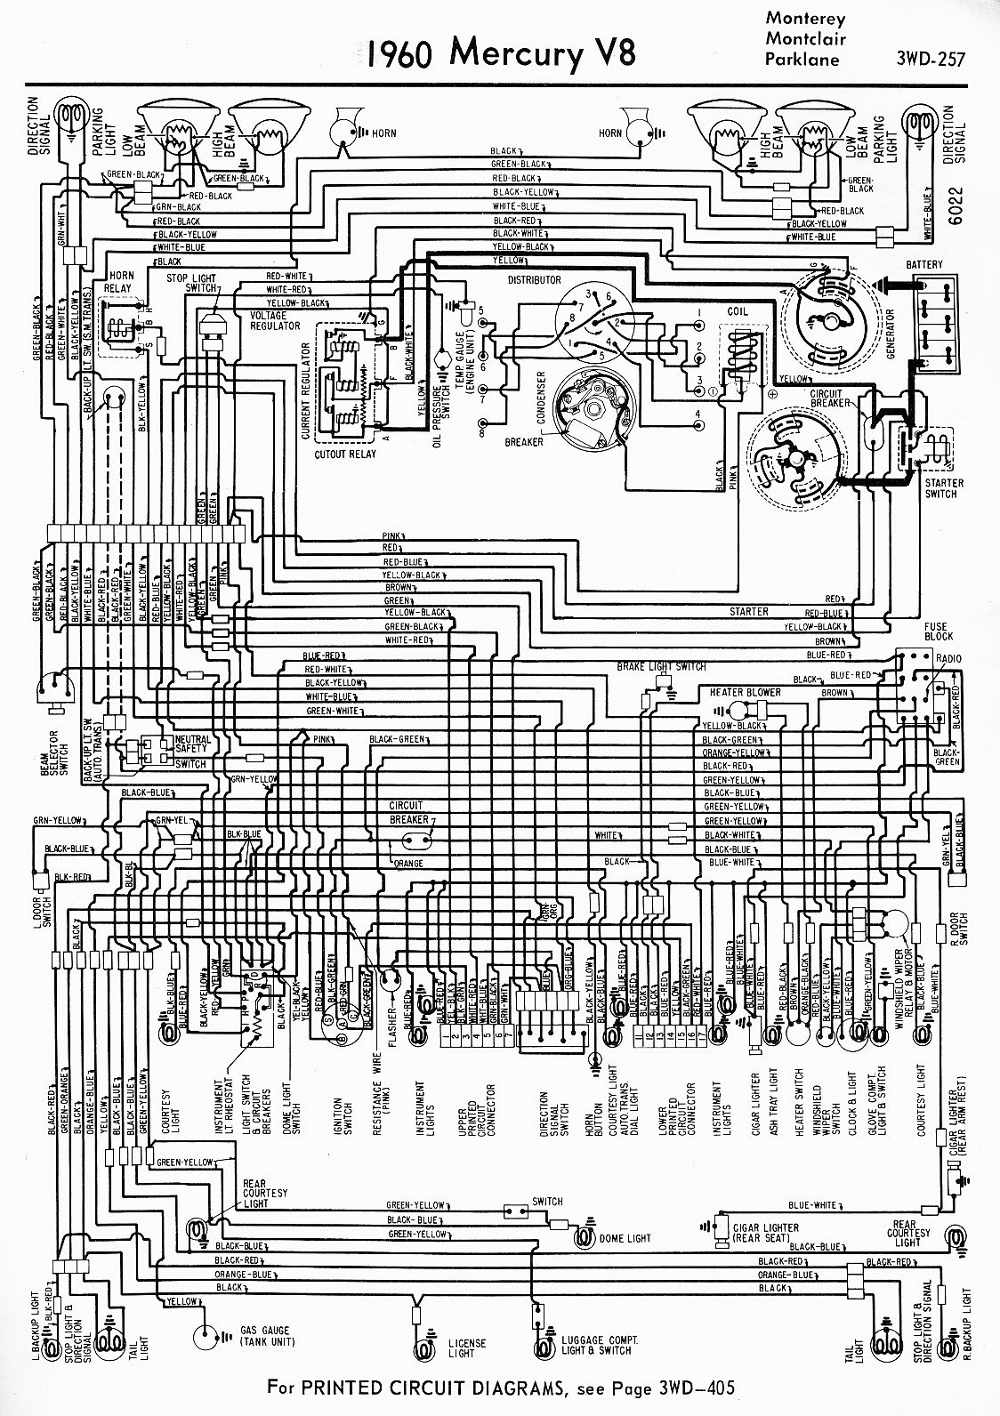 1955 Ford Wiring Schematic Electrical Diagram Schematics 1951 F1 Truck Turn Signal Diagrams Free Download For Lights Ignition Switch 1954 Mercury